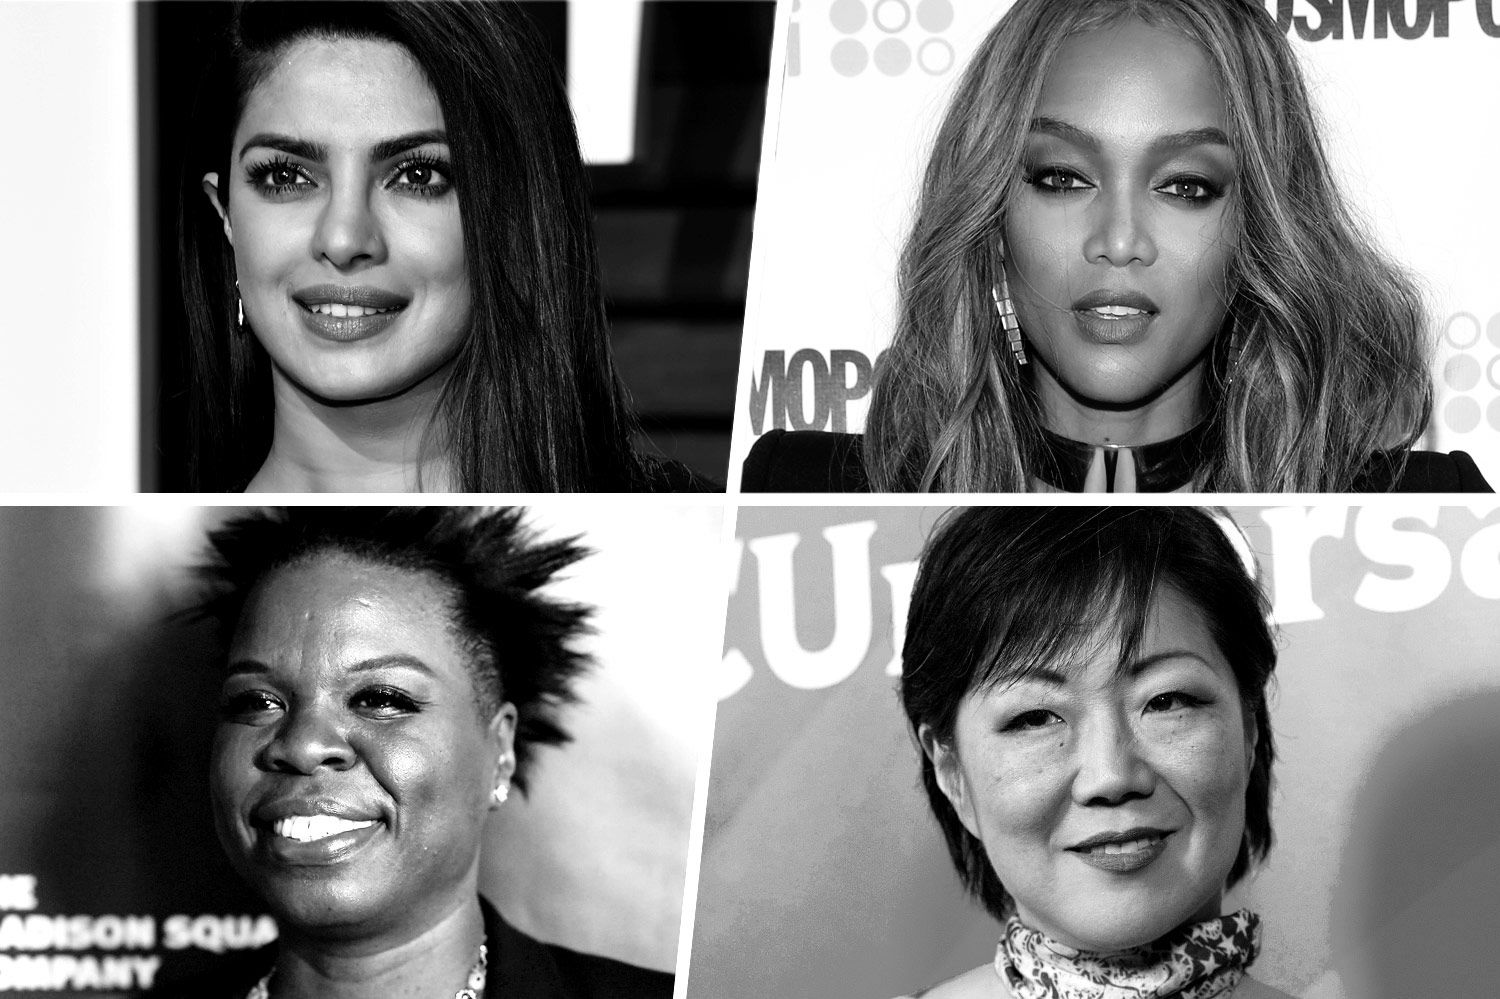 Quotes From 25 Famous Women on Bullying